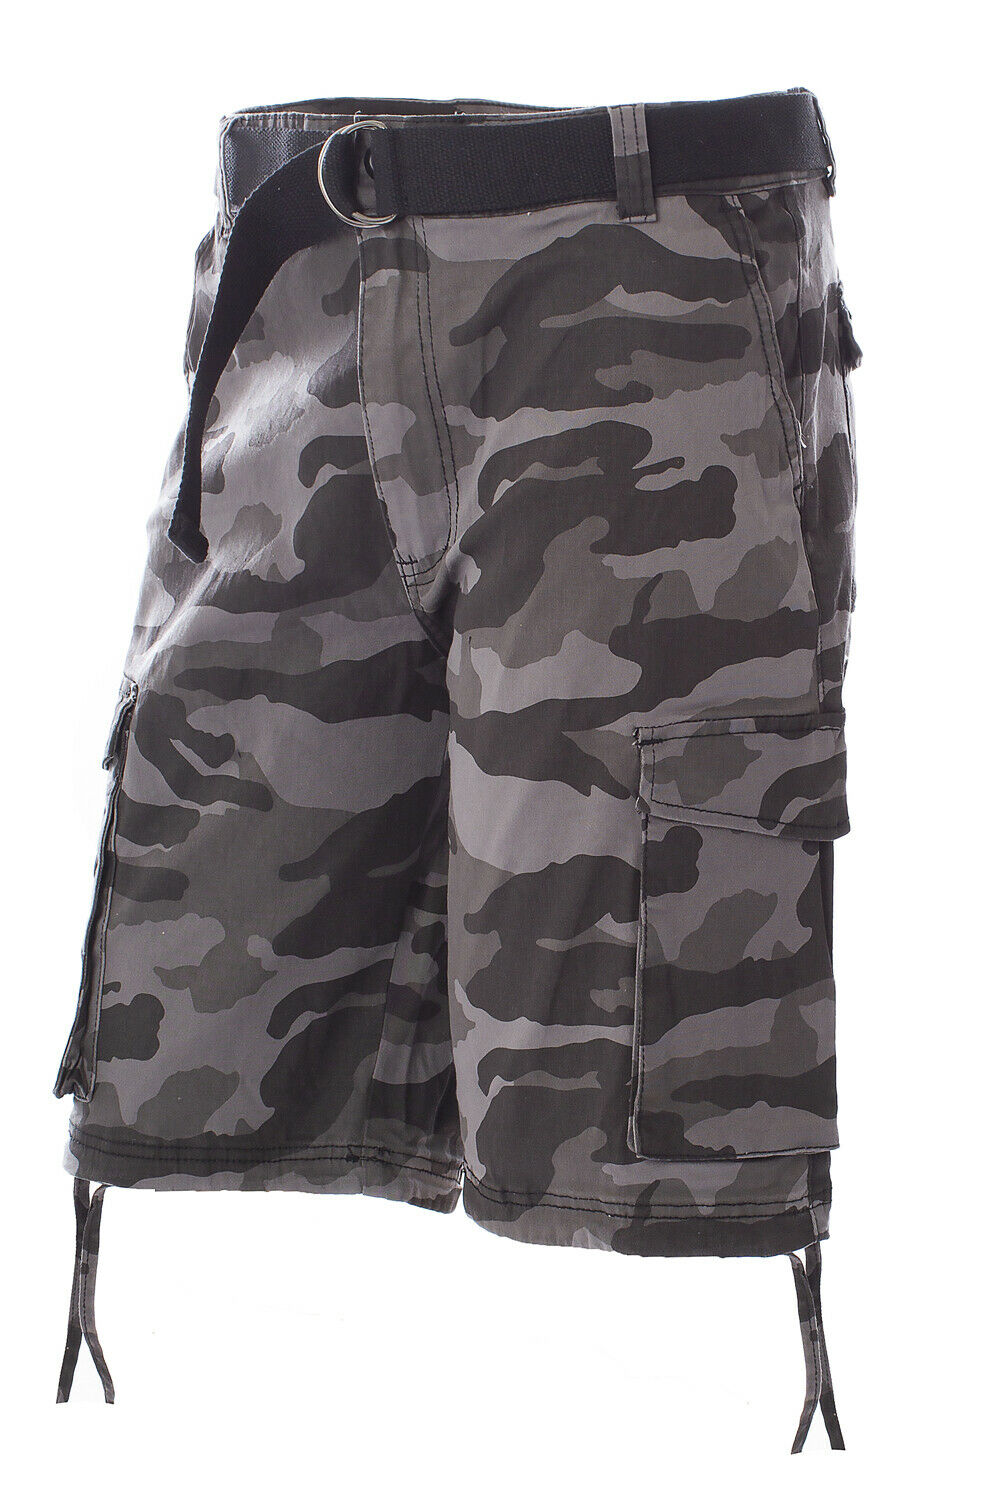 New Mens Slim Fit Fleece Shorts Army Half Pants Camouflage Cotton Jersey Bottoms